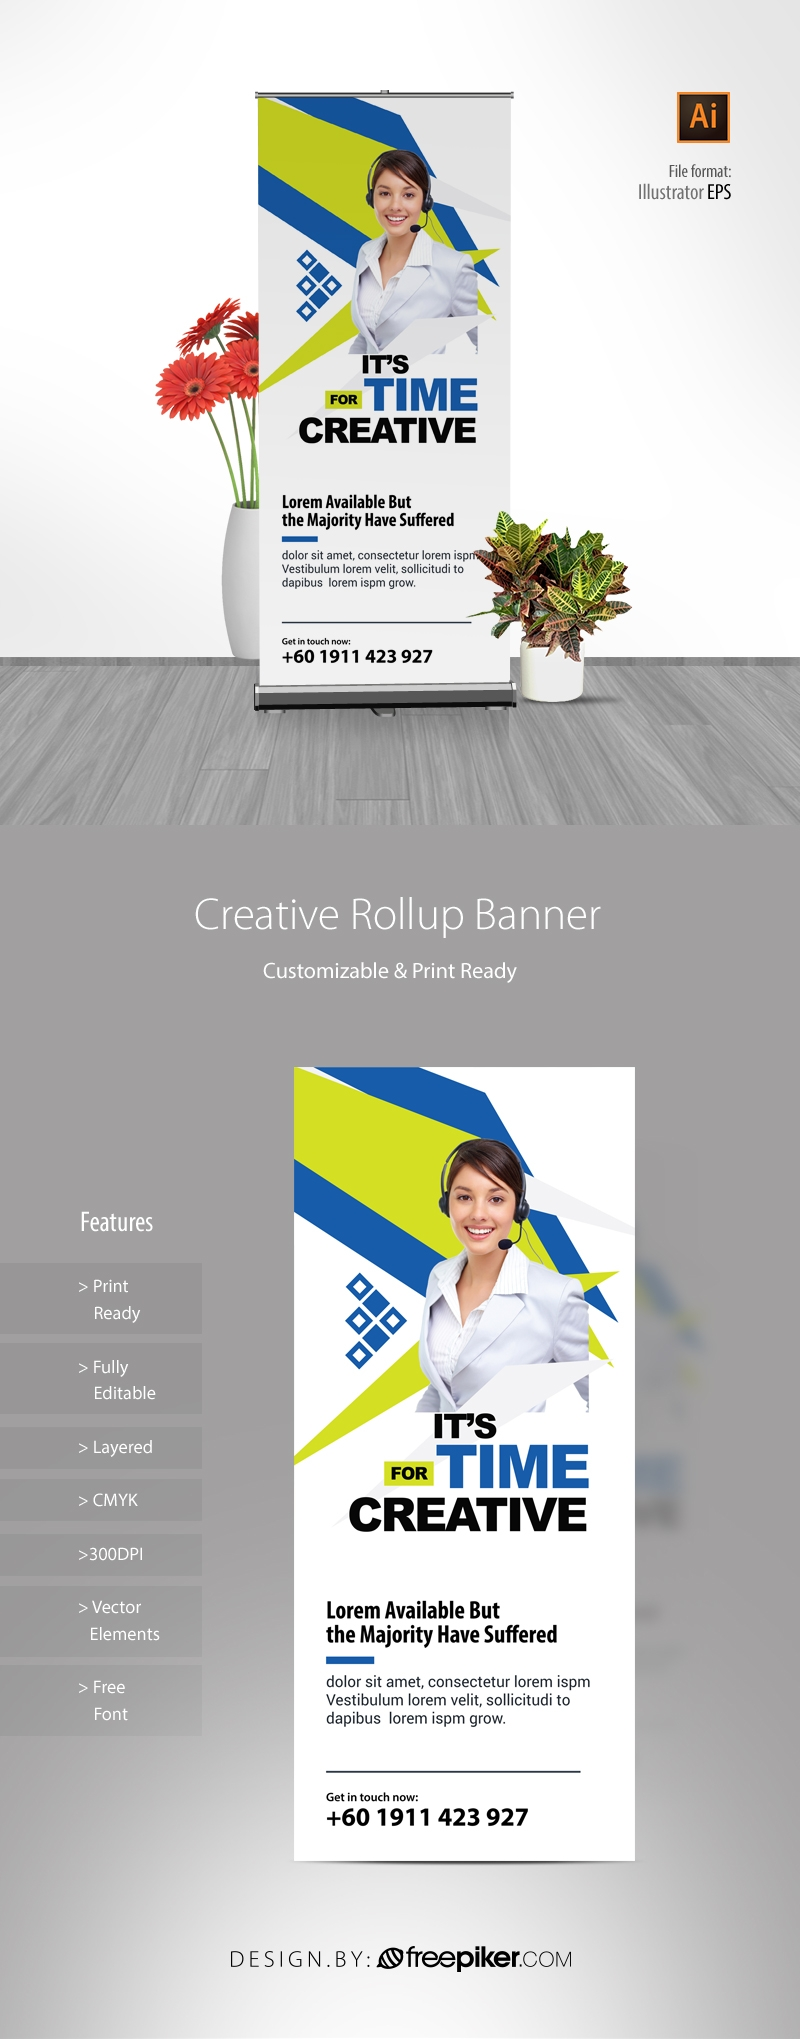 Creative Rollup Banner With Blue And Green Accent